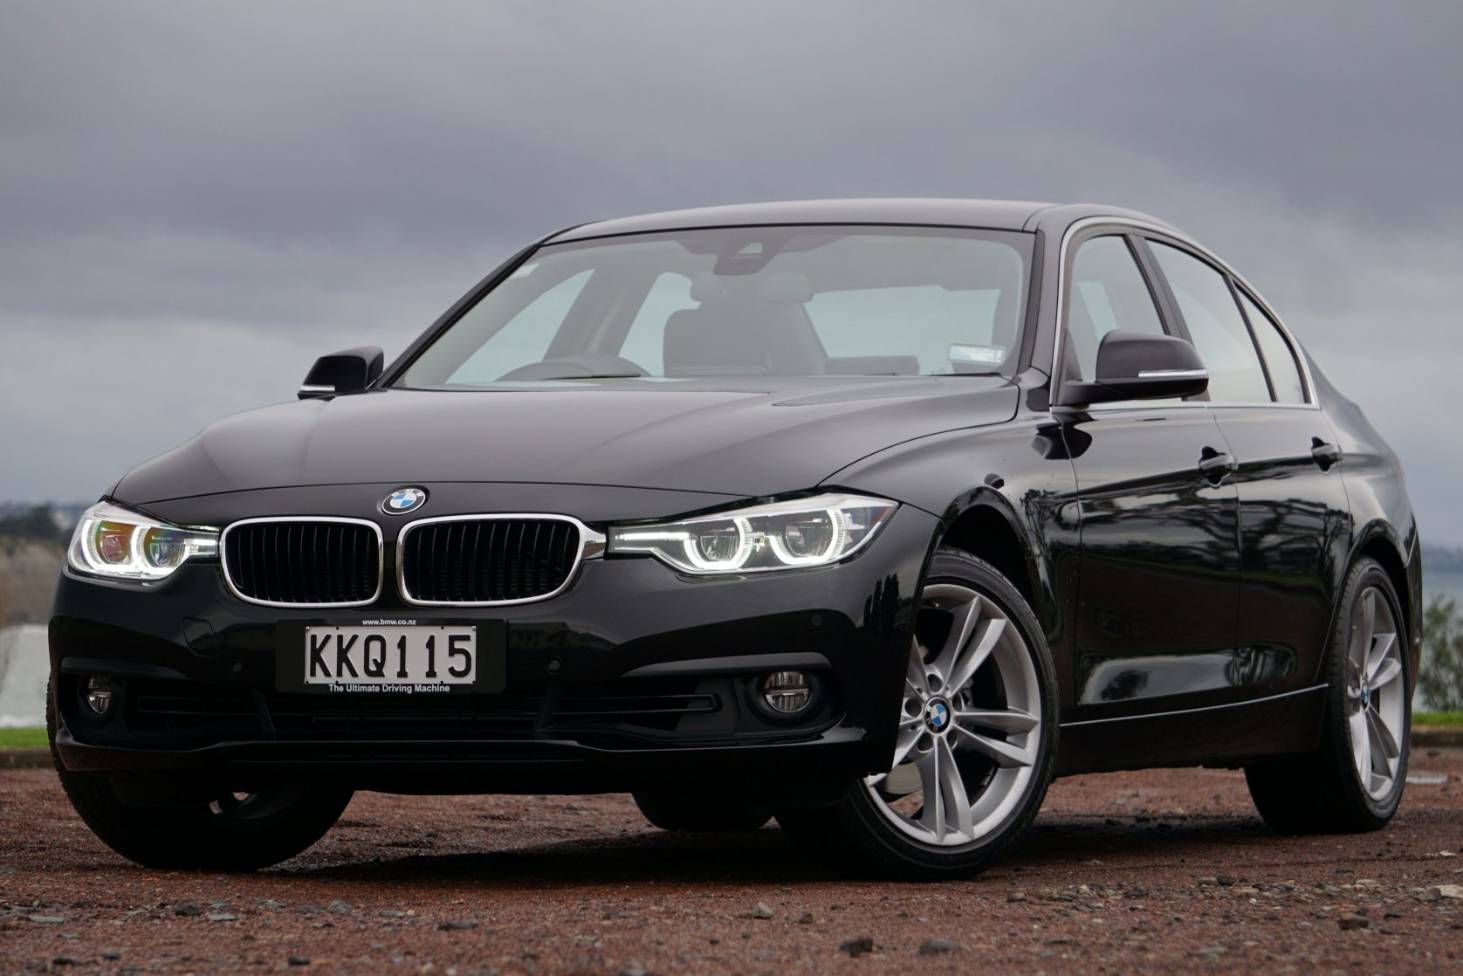 Why The Bmw 318i Is Our Top Family Car Of 2017 3 0 Engine Problems